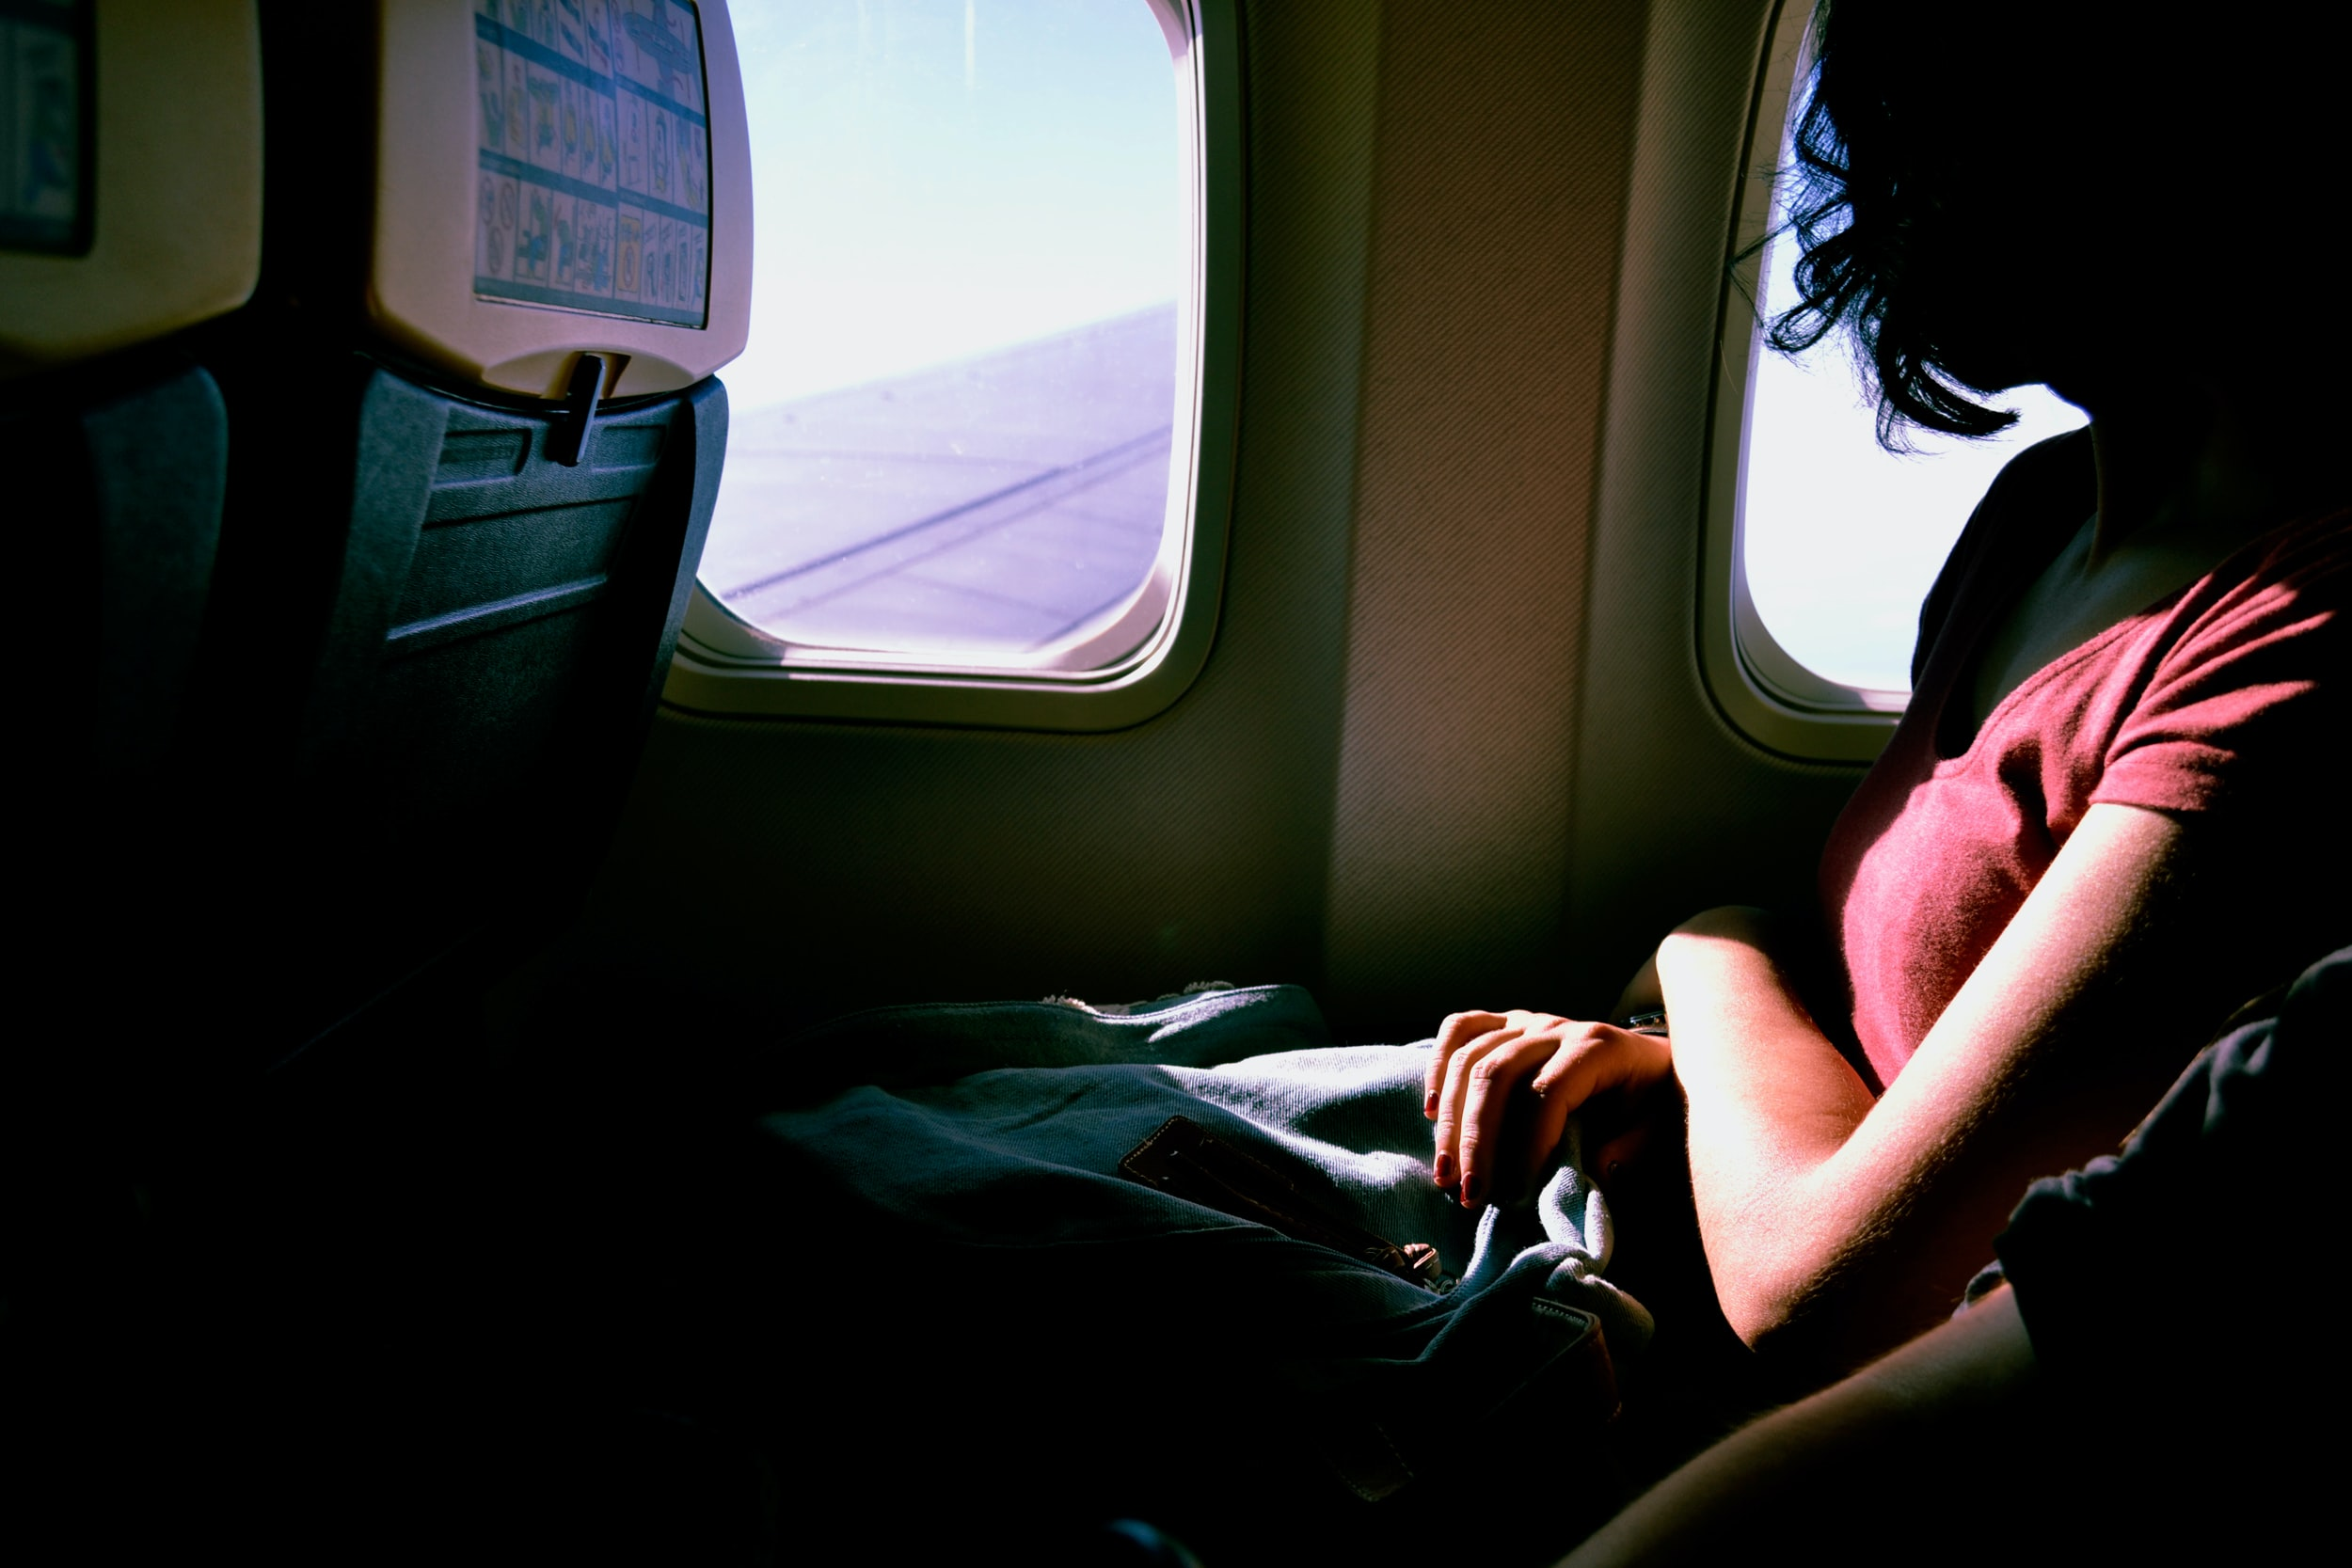 The inside of an airplane with a woman looking out the window